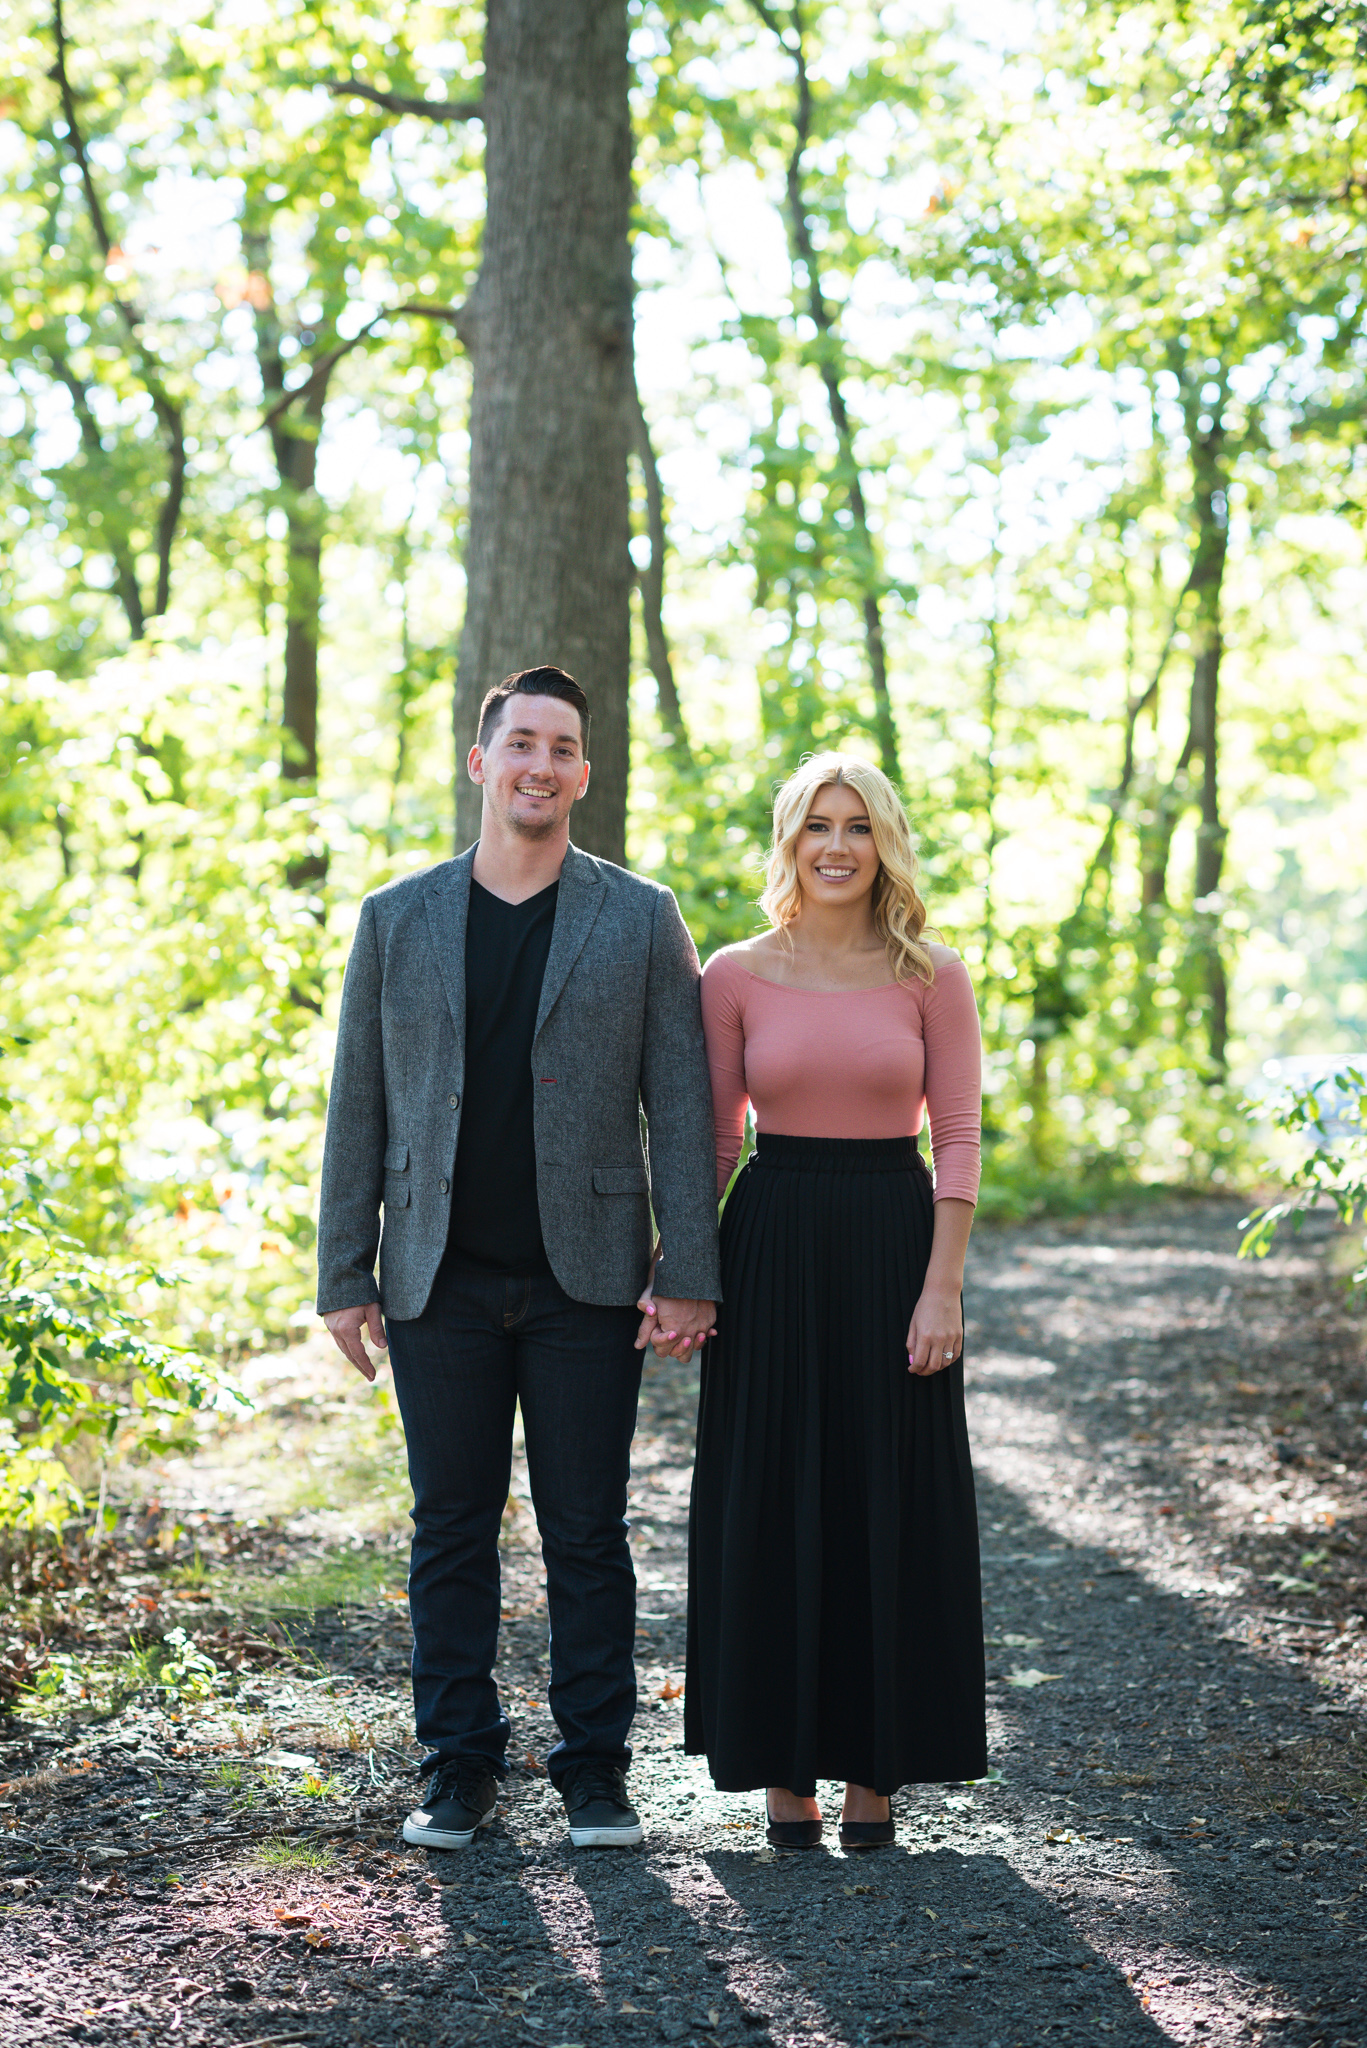 Mindy-Engagement-photography-wedding-photographer-northeast-PA-Scranton-Poconos-9.jpg